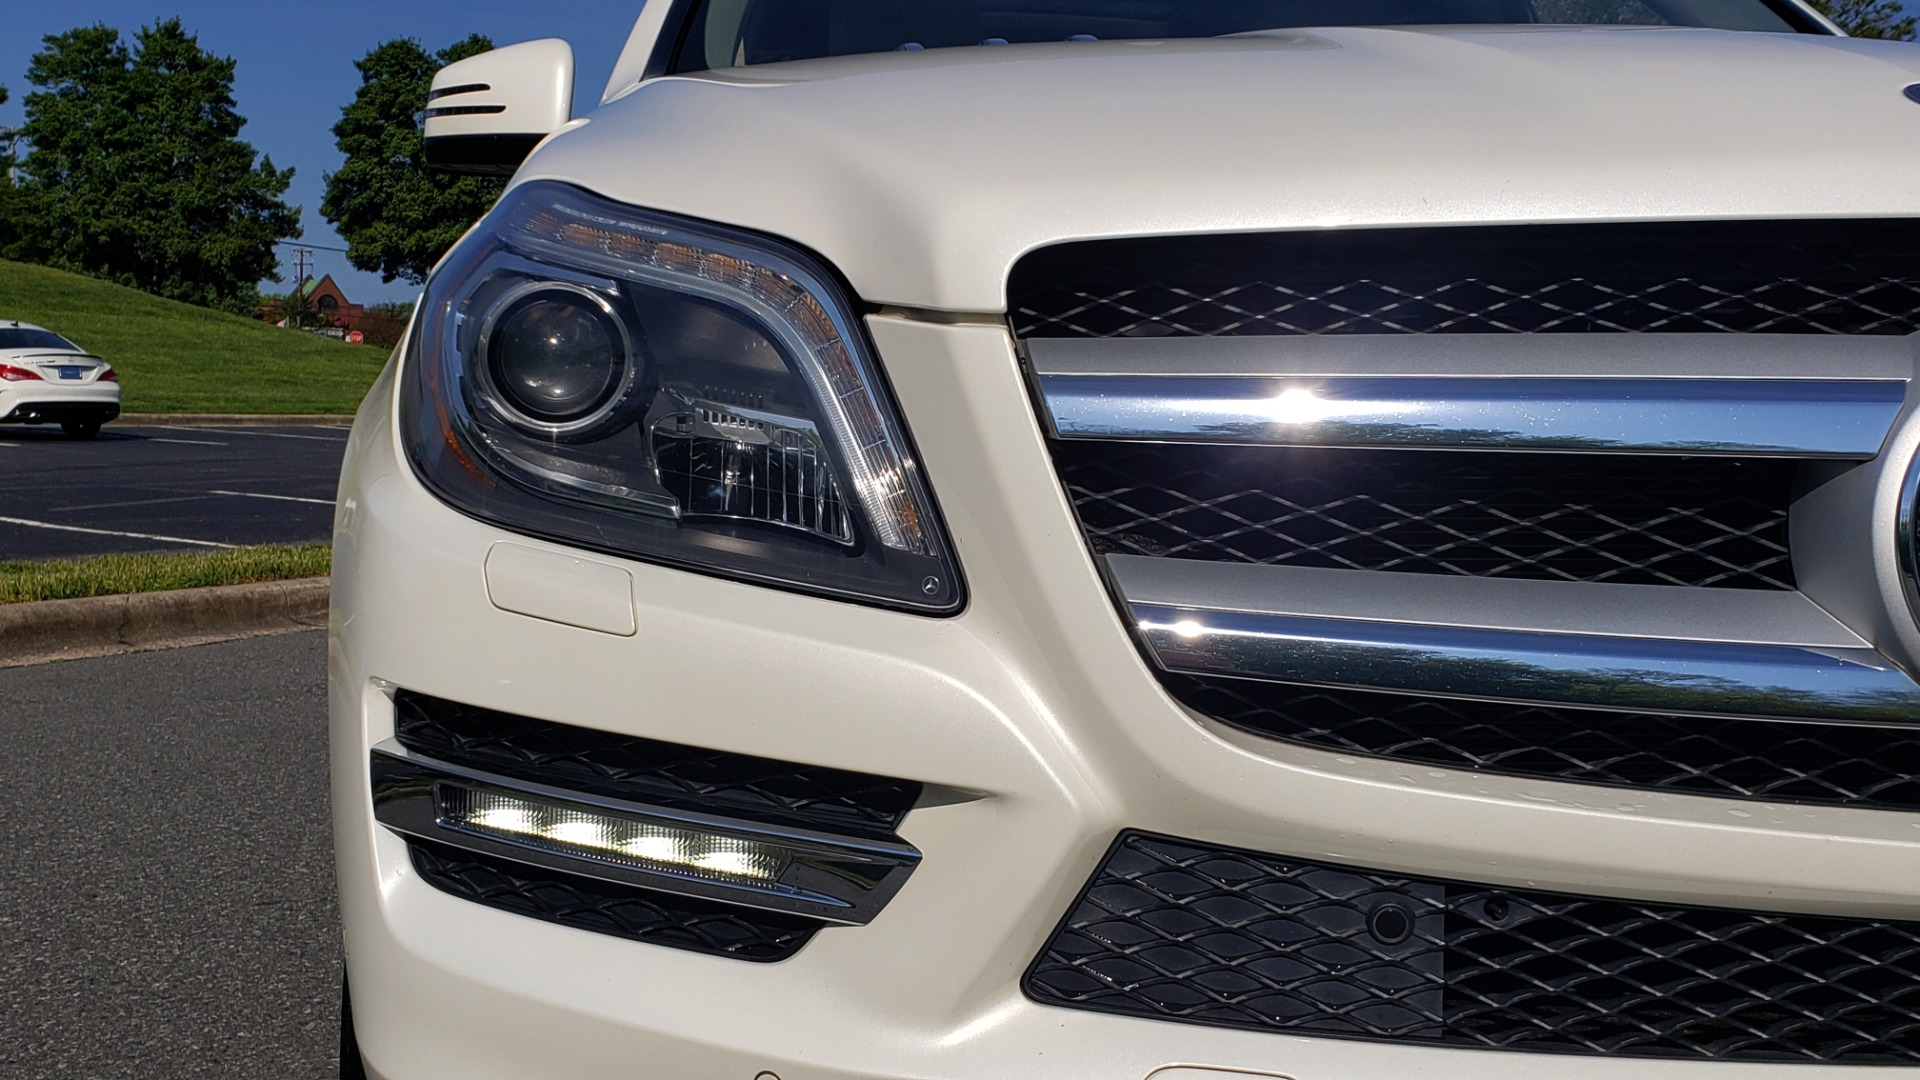 Used 2014 Mercedes-Benz GL-Class GL 450 PREMIUM / NAV / SUNROOF / 3-ROW / REARVIEW for sale Sold at Formula Imports in Charlotte NC 28227 29